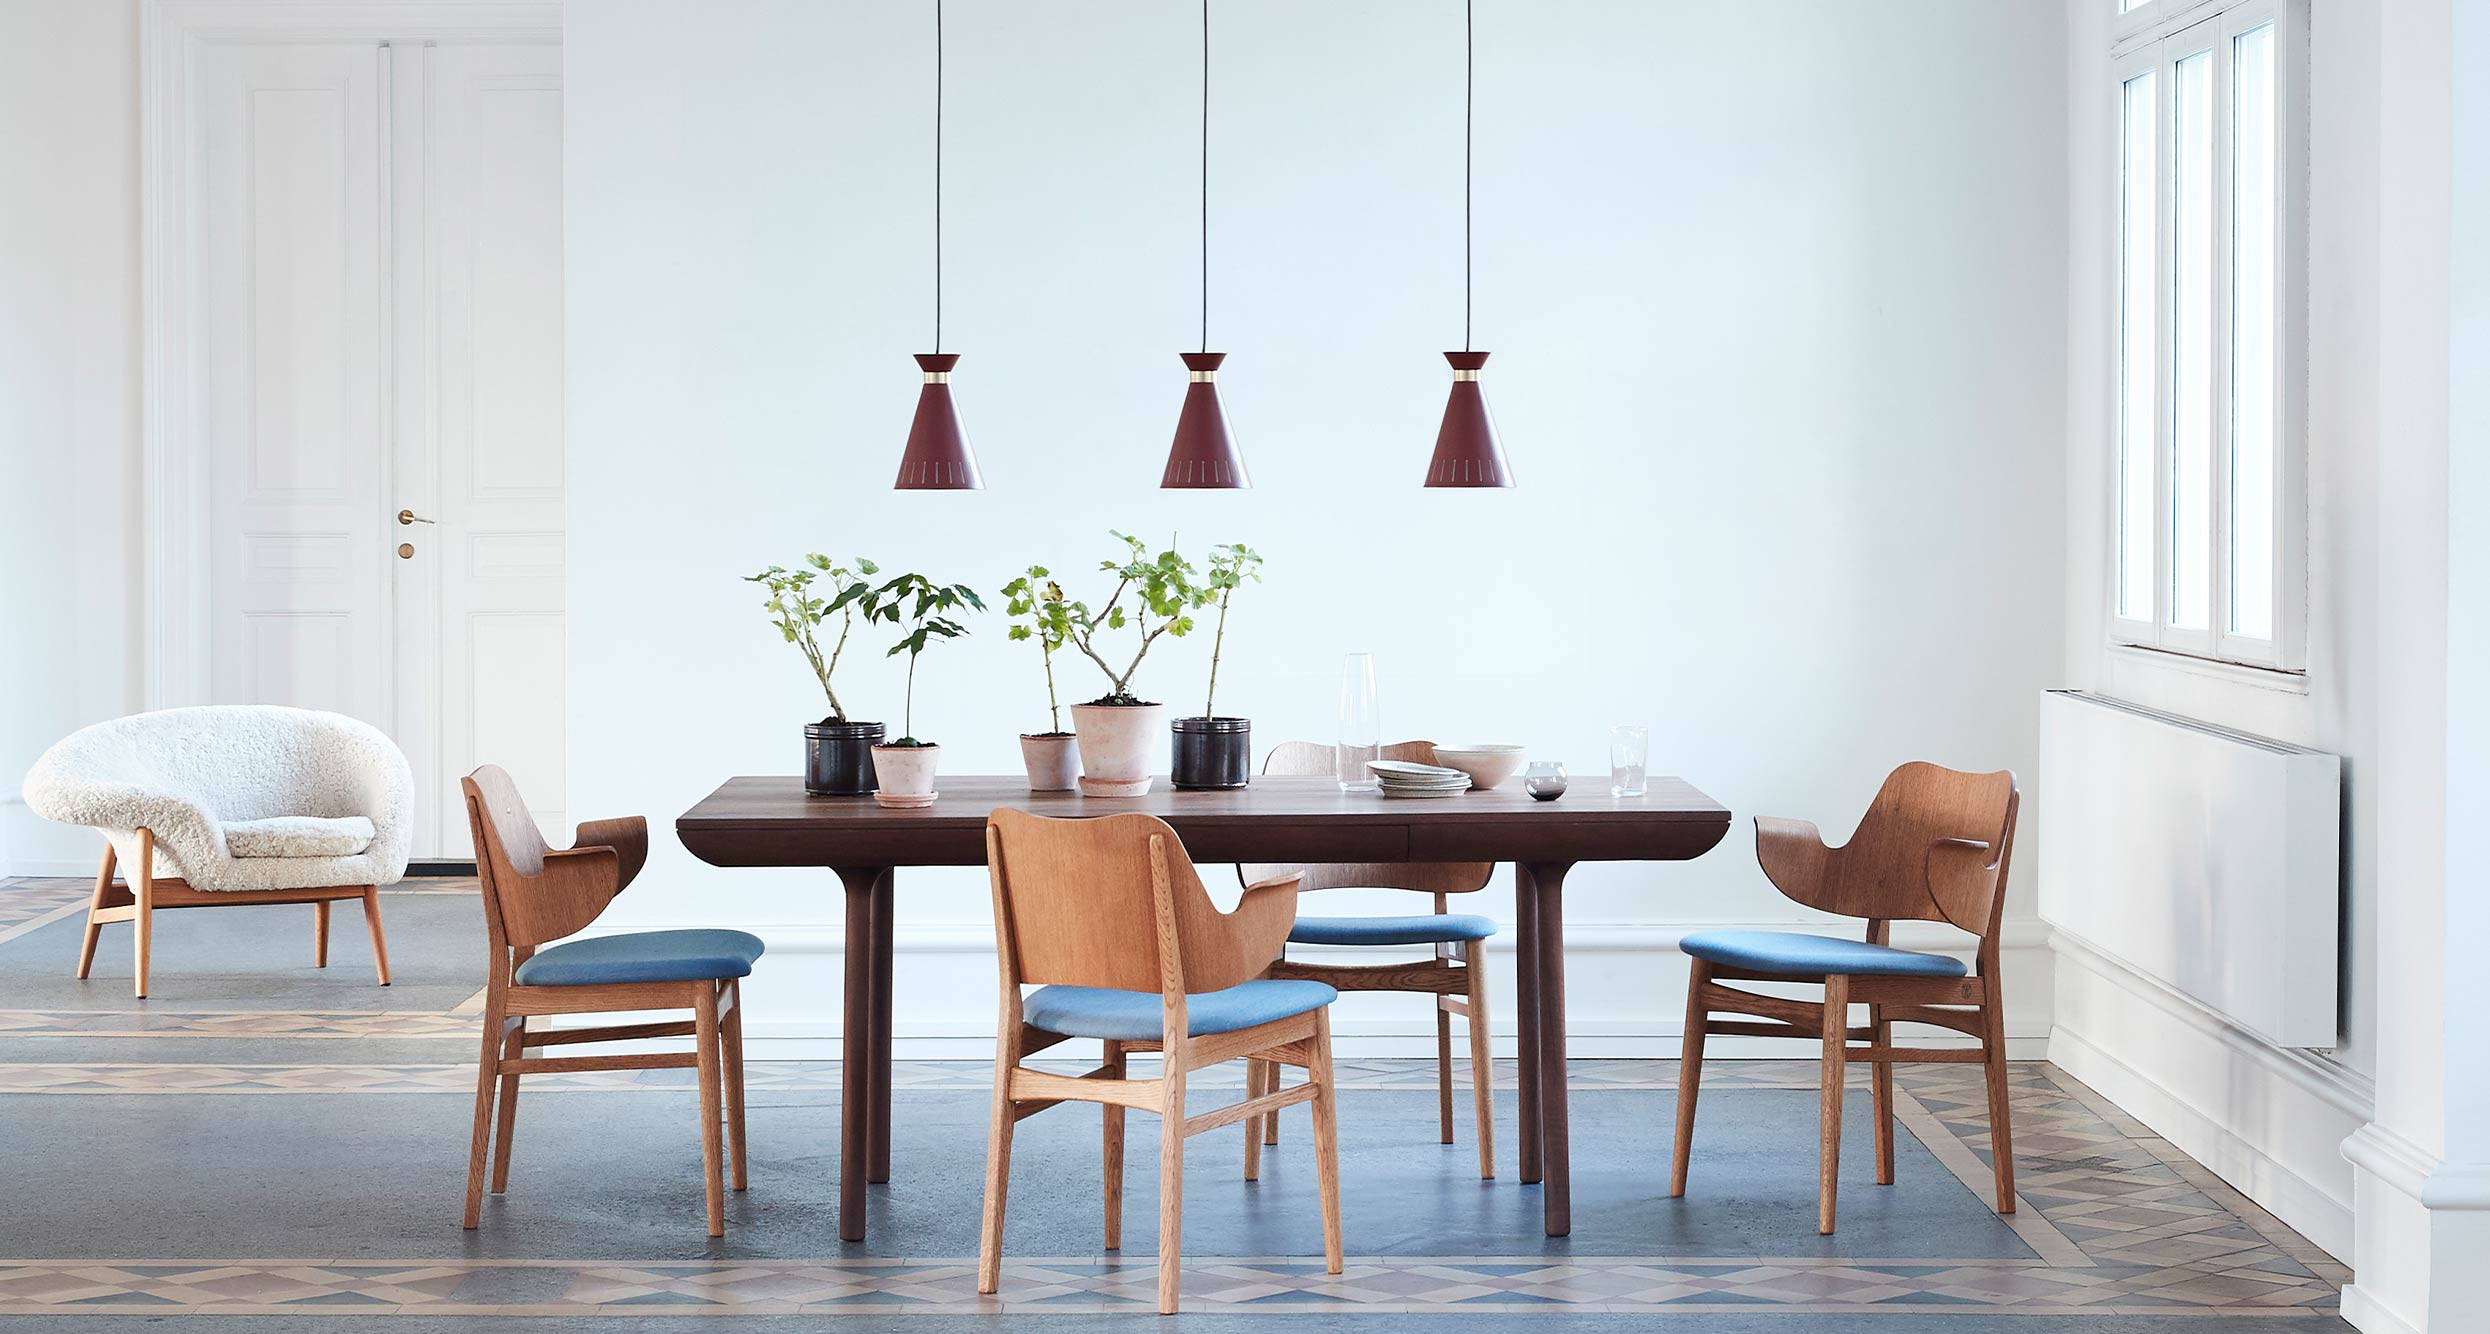 Cone pendants in dining room